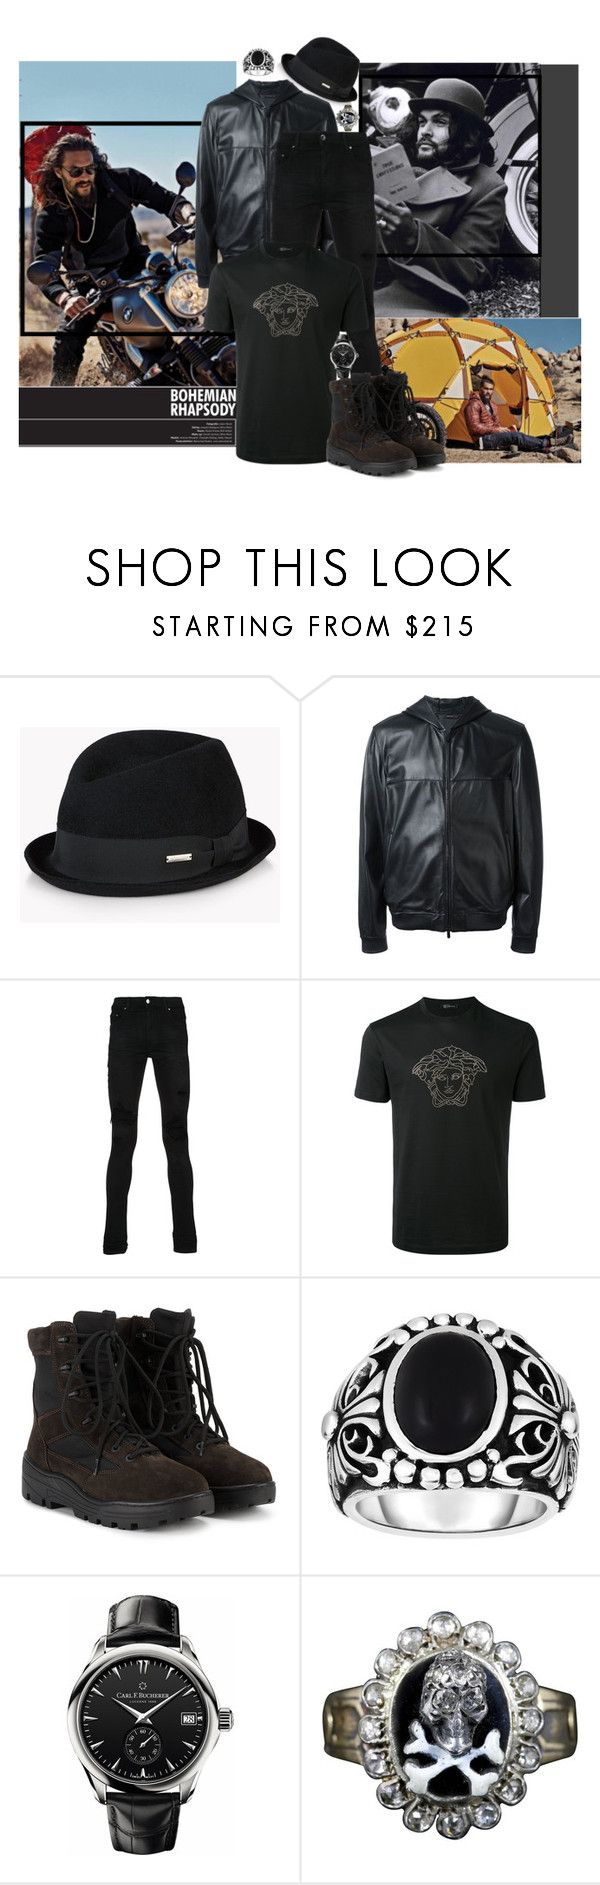 """""""All Black Everything"""" by ahcha ❤ liked on Polyvore featuring Topanga, Dsquared2, Fendi, AMIRI, Versace, Yeezy by Kanye West, Phillip Gavriel, Carl F. Bucherer, memento and men's fashion"""